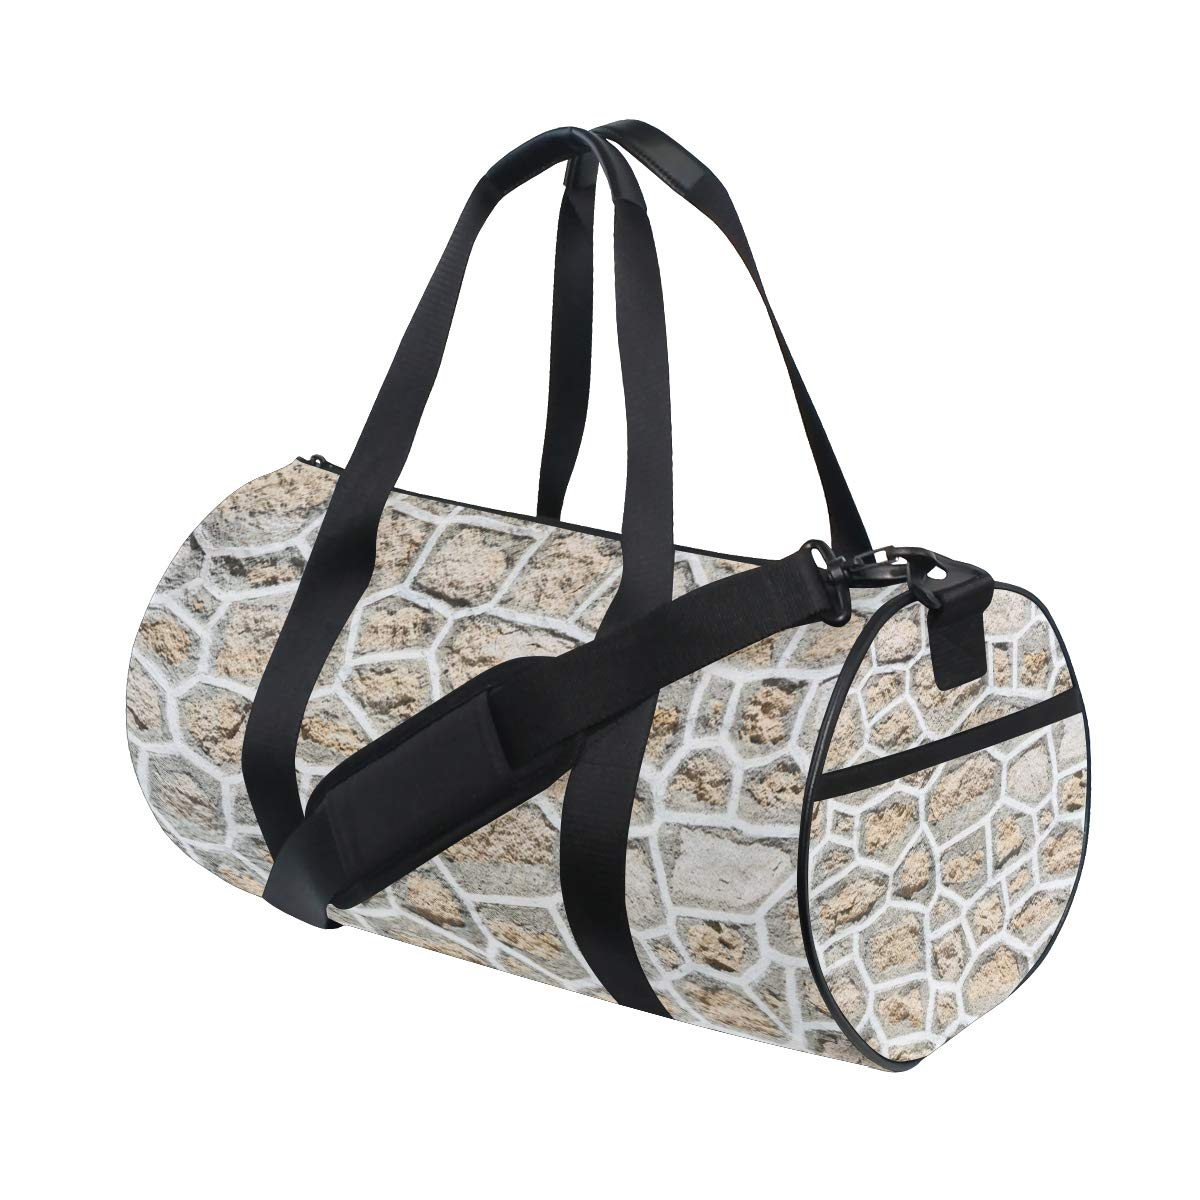 Yoga Sports Gym Duffle Bags Tote Sling Travel Bag Patterned Canvas with Pocket and Zipper For Men Women Bag